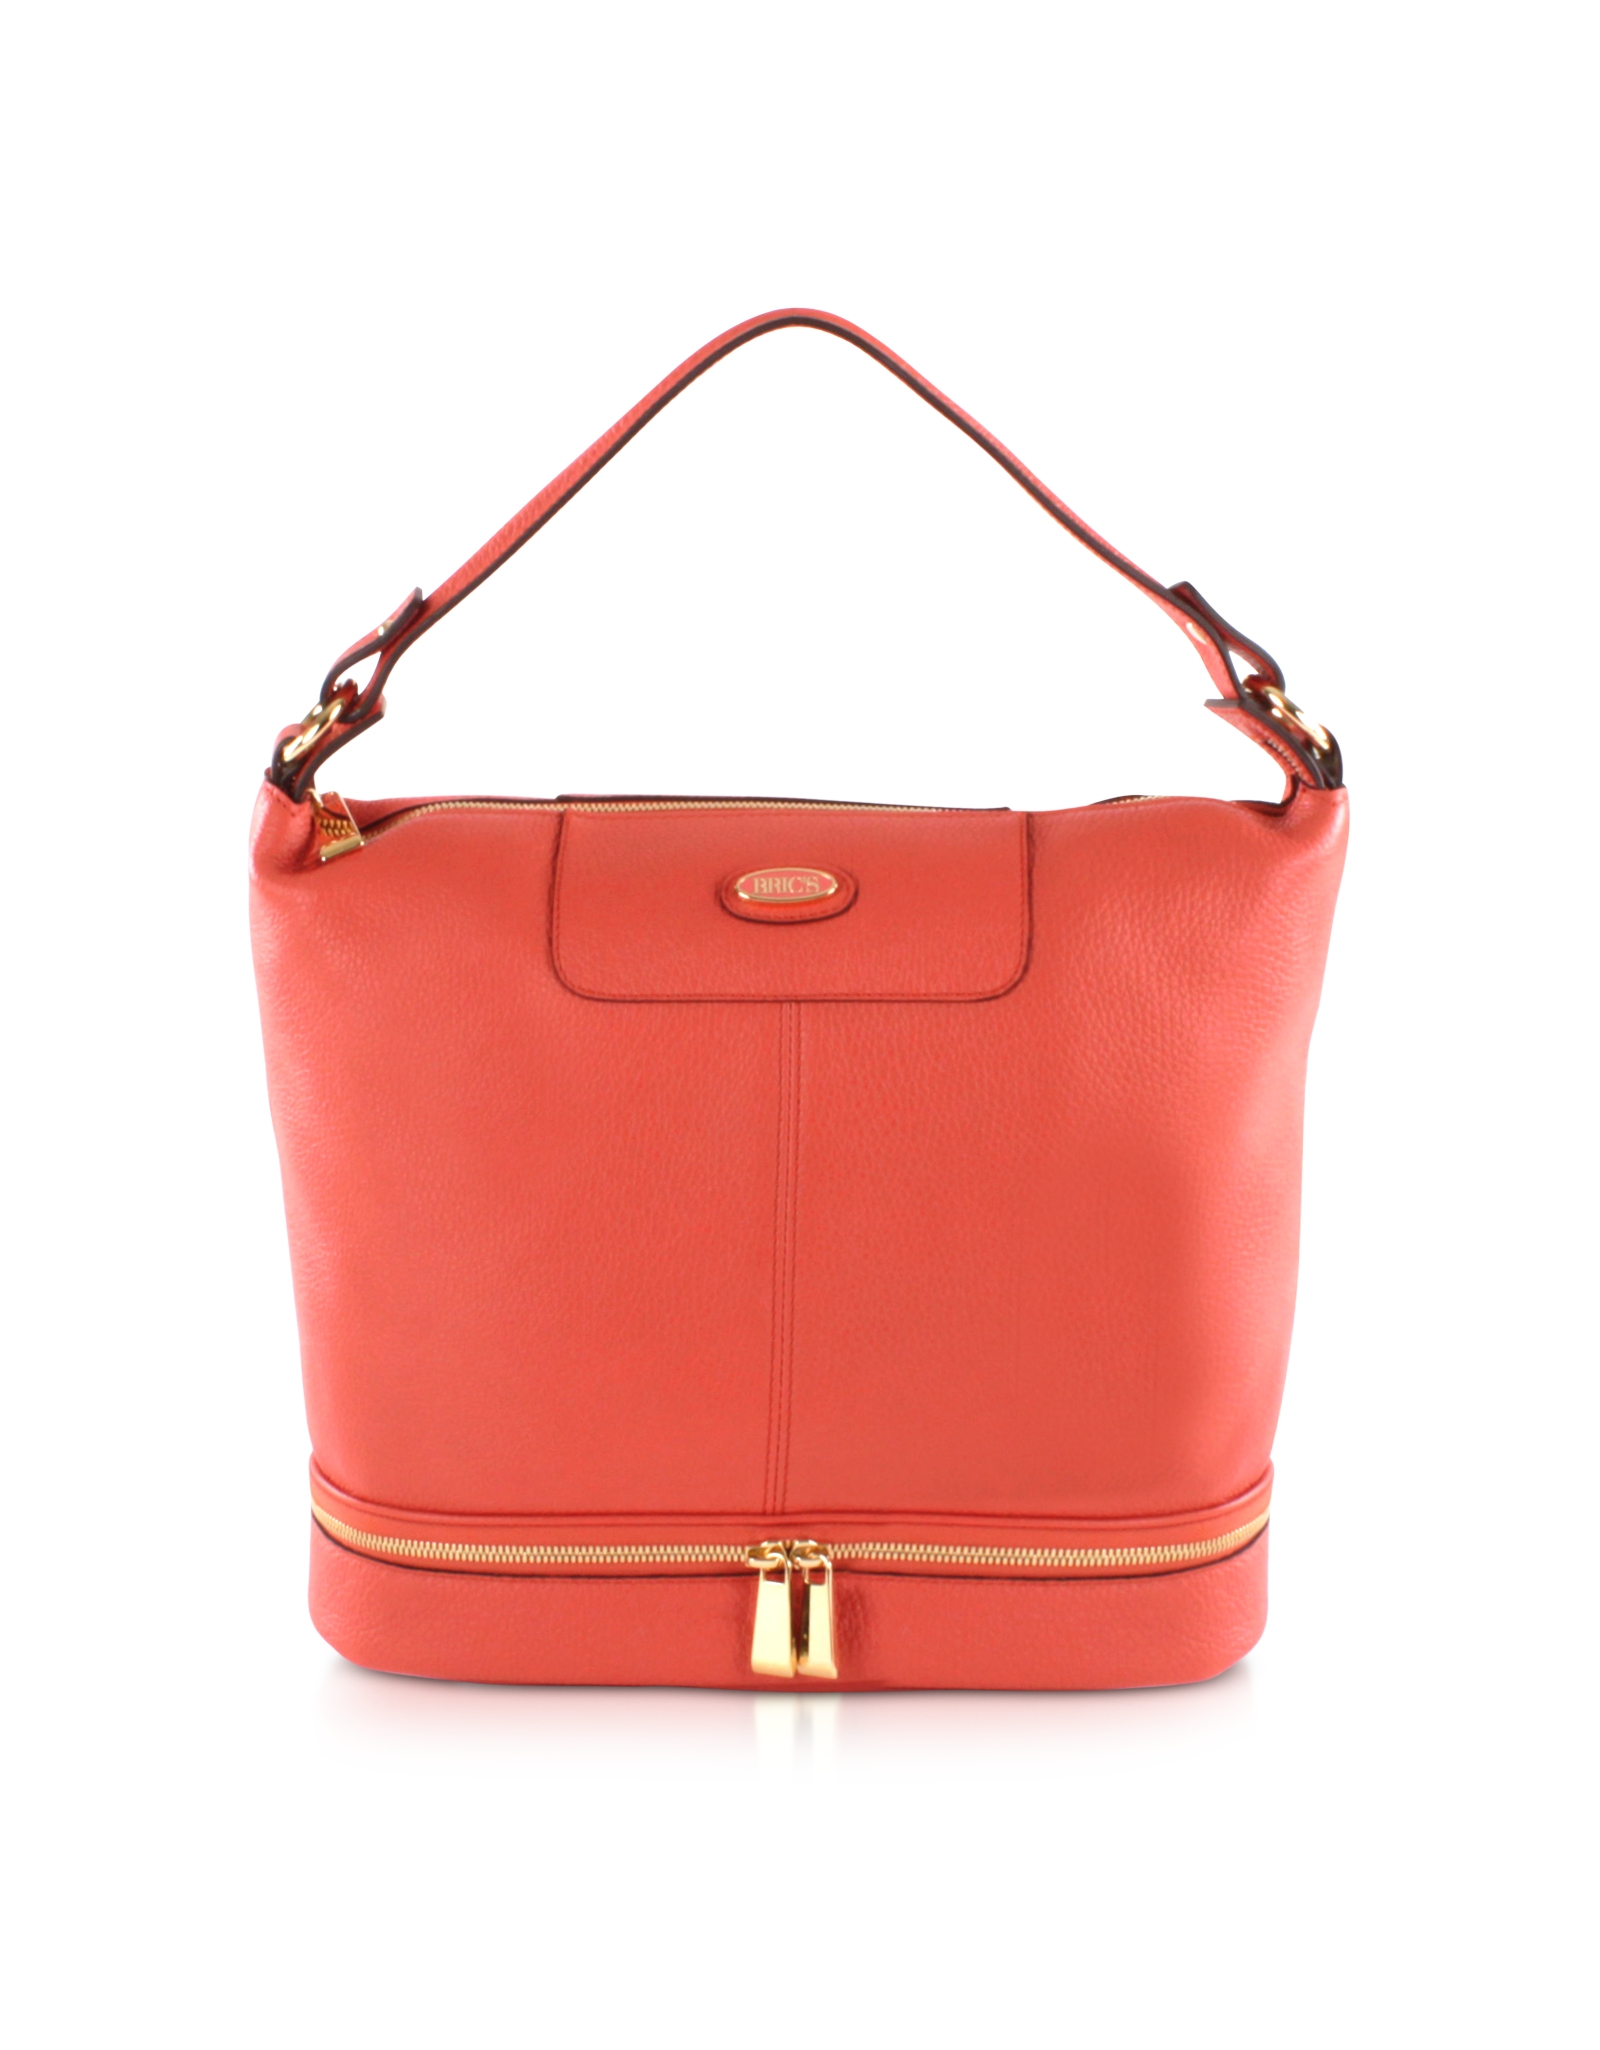 Borse Bag Verona : Bric s verona leather bucket bag in orange lyst